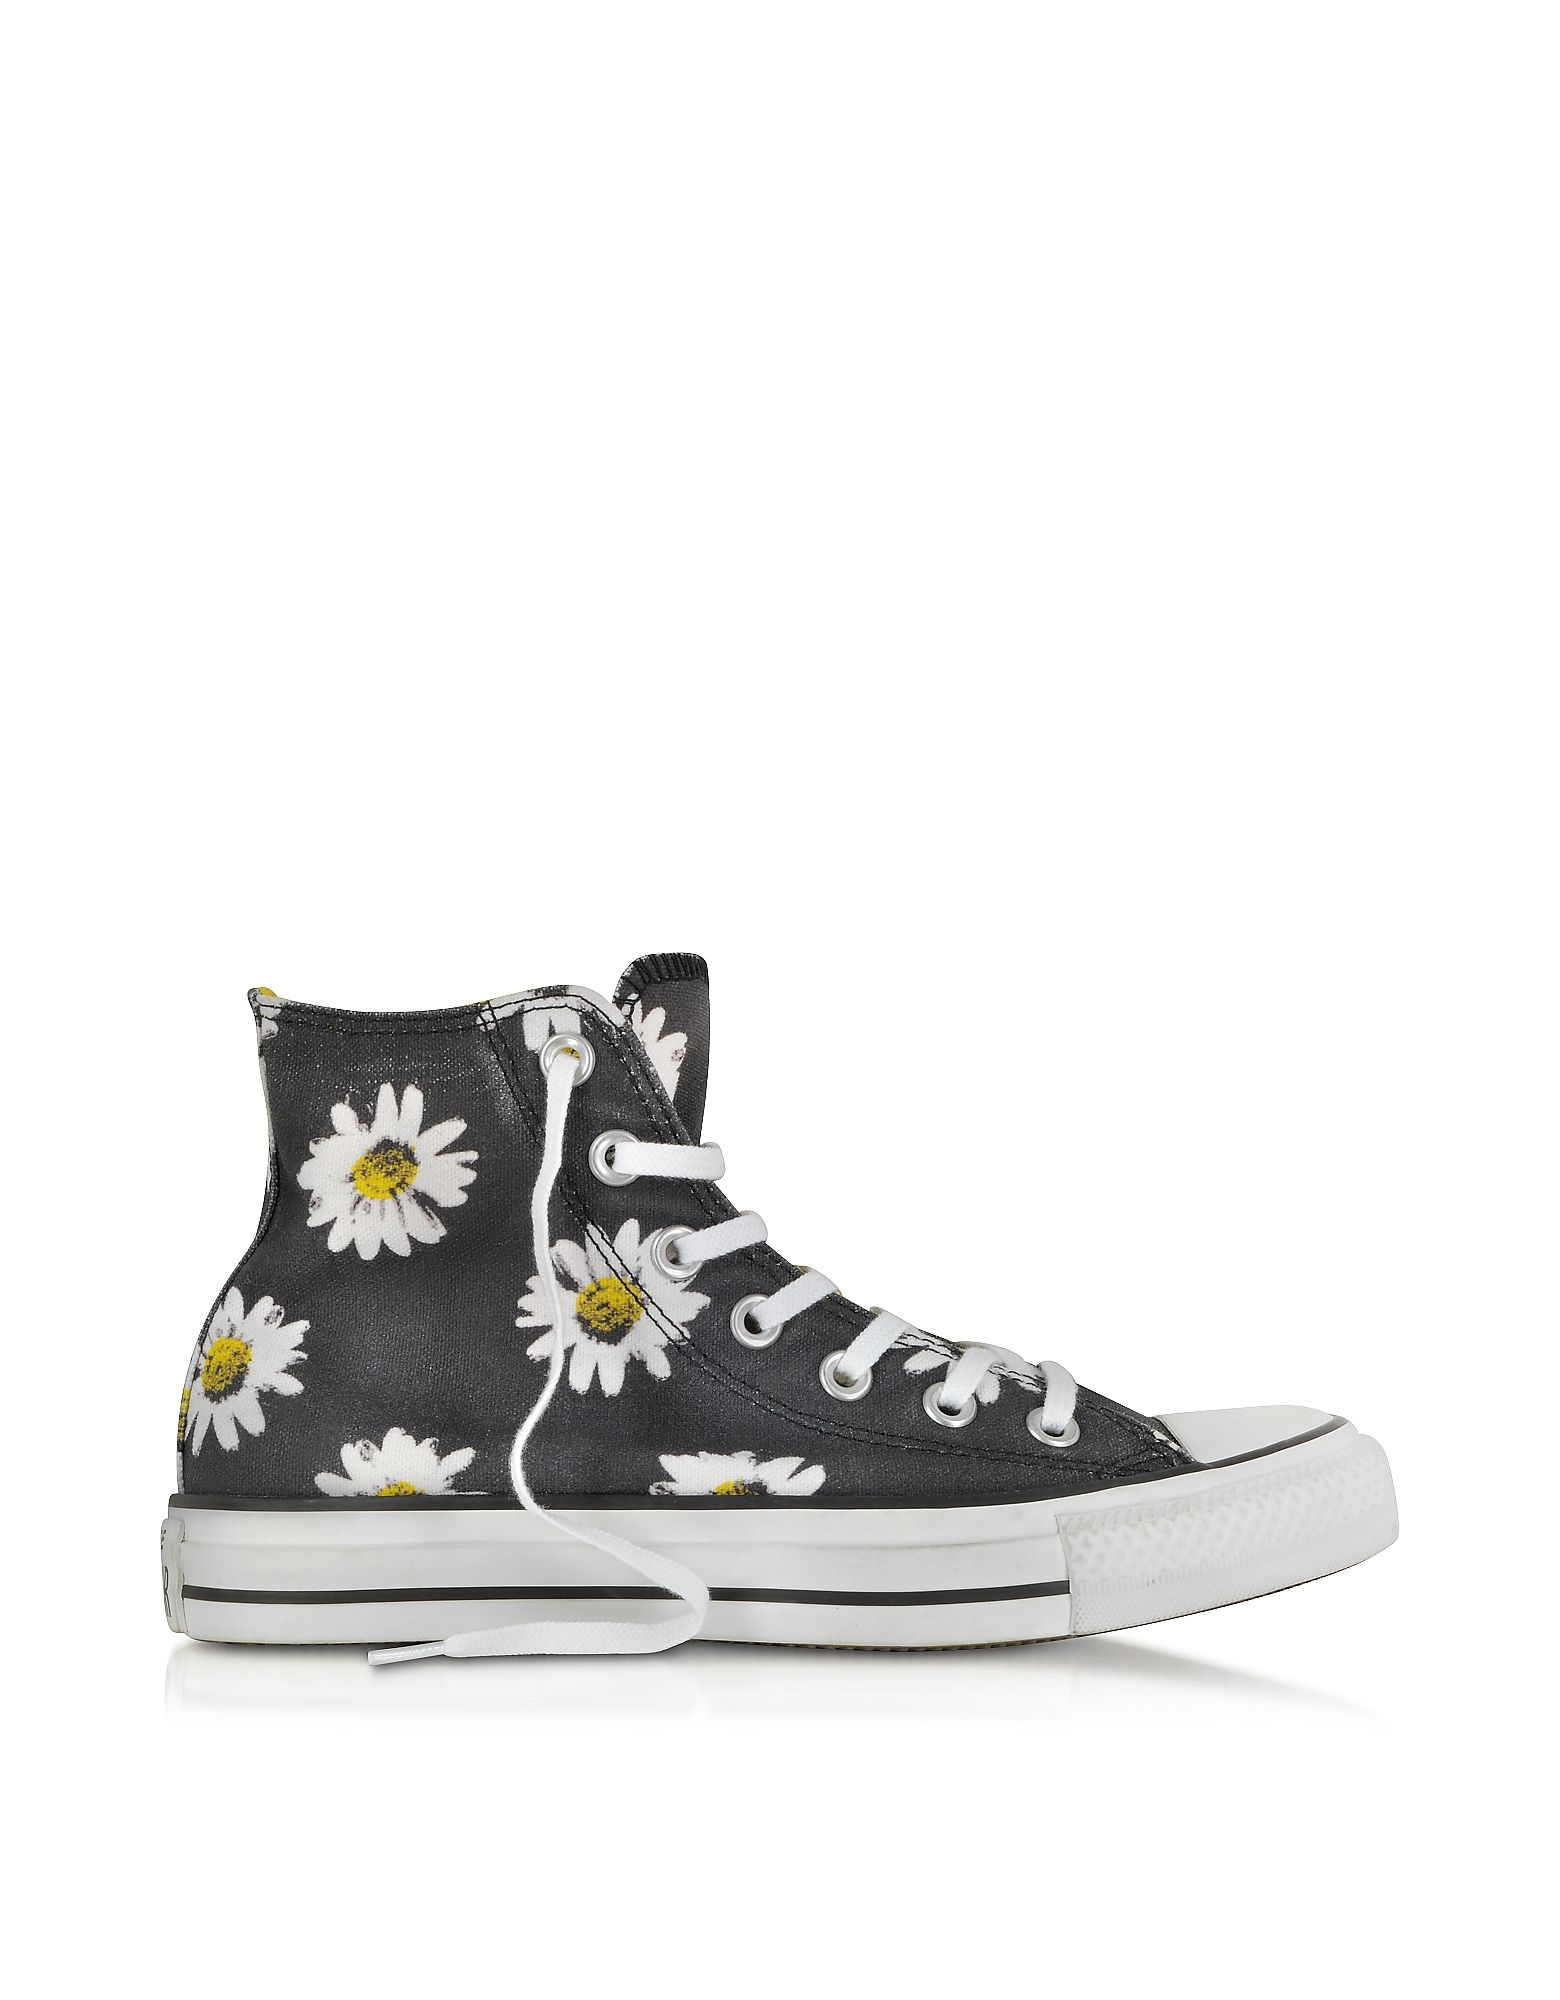 f1b0ef1add83 Converse Limited Edition Chuck Taylor All Star Black and Citrus ...